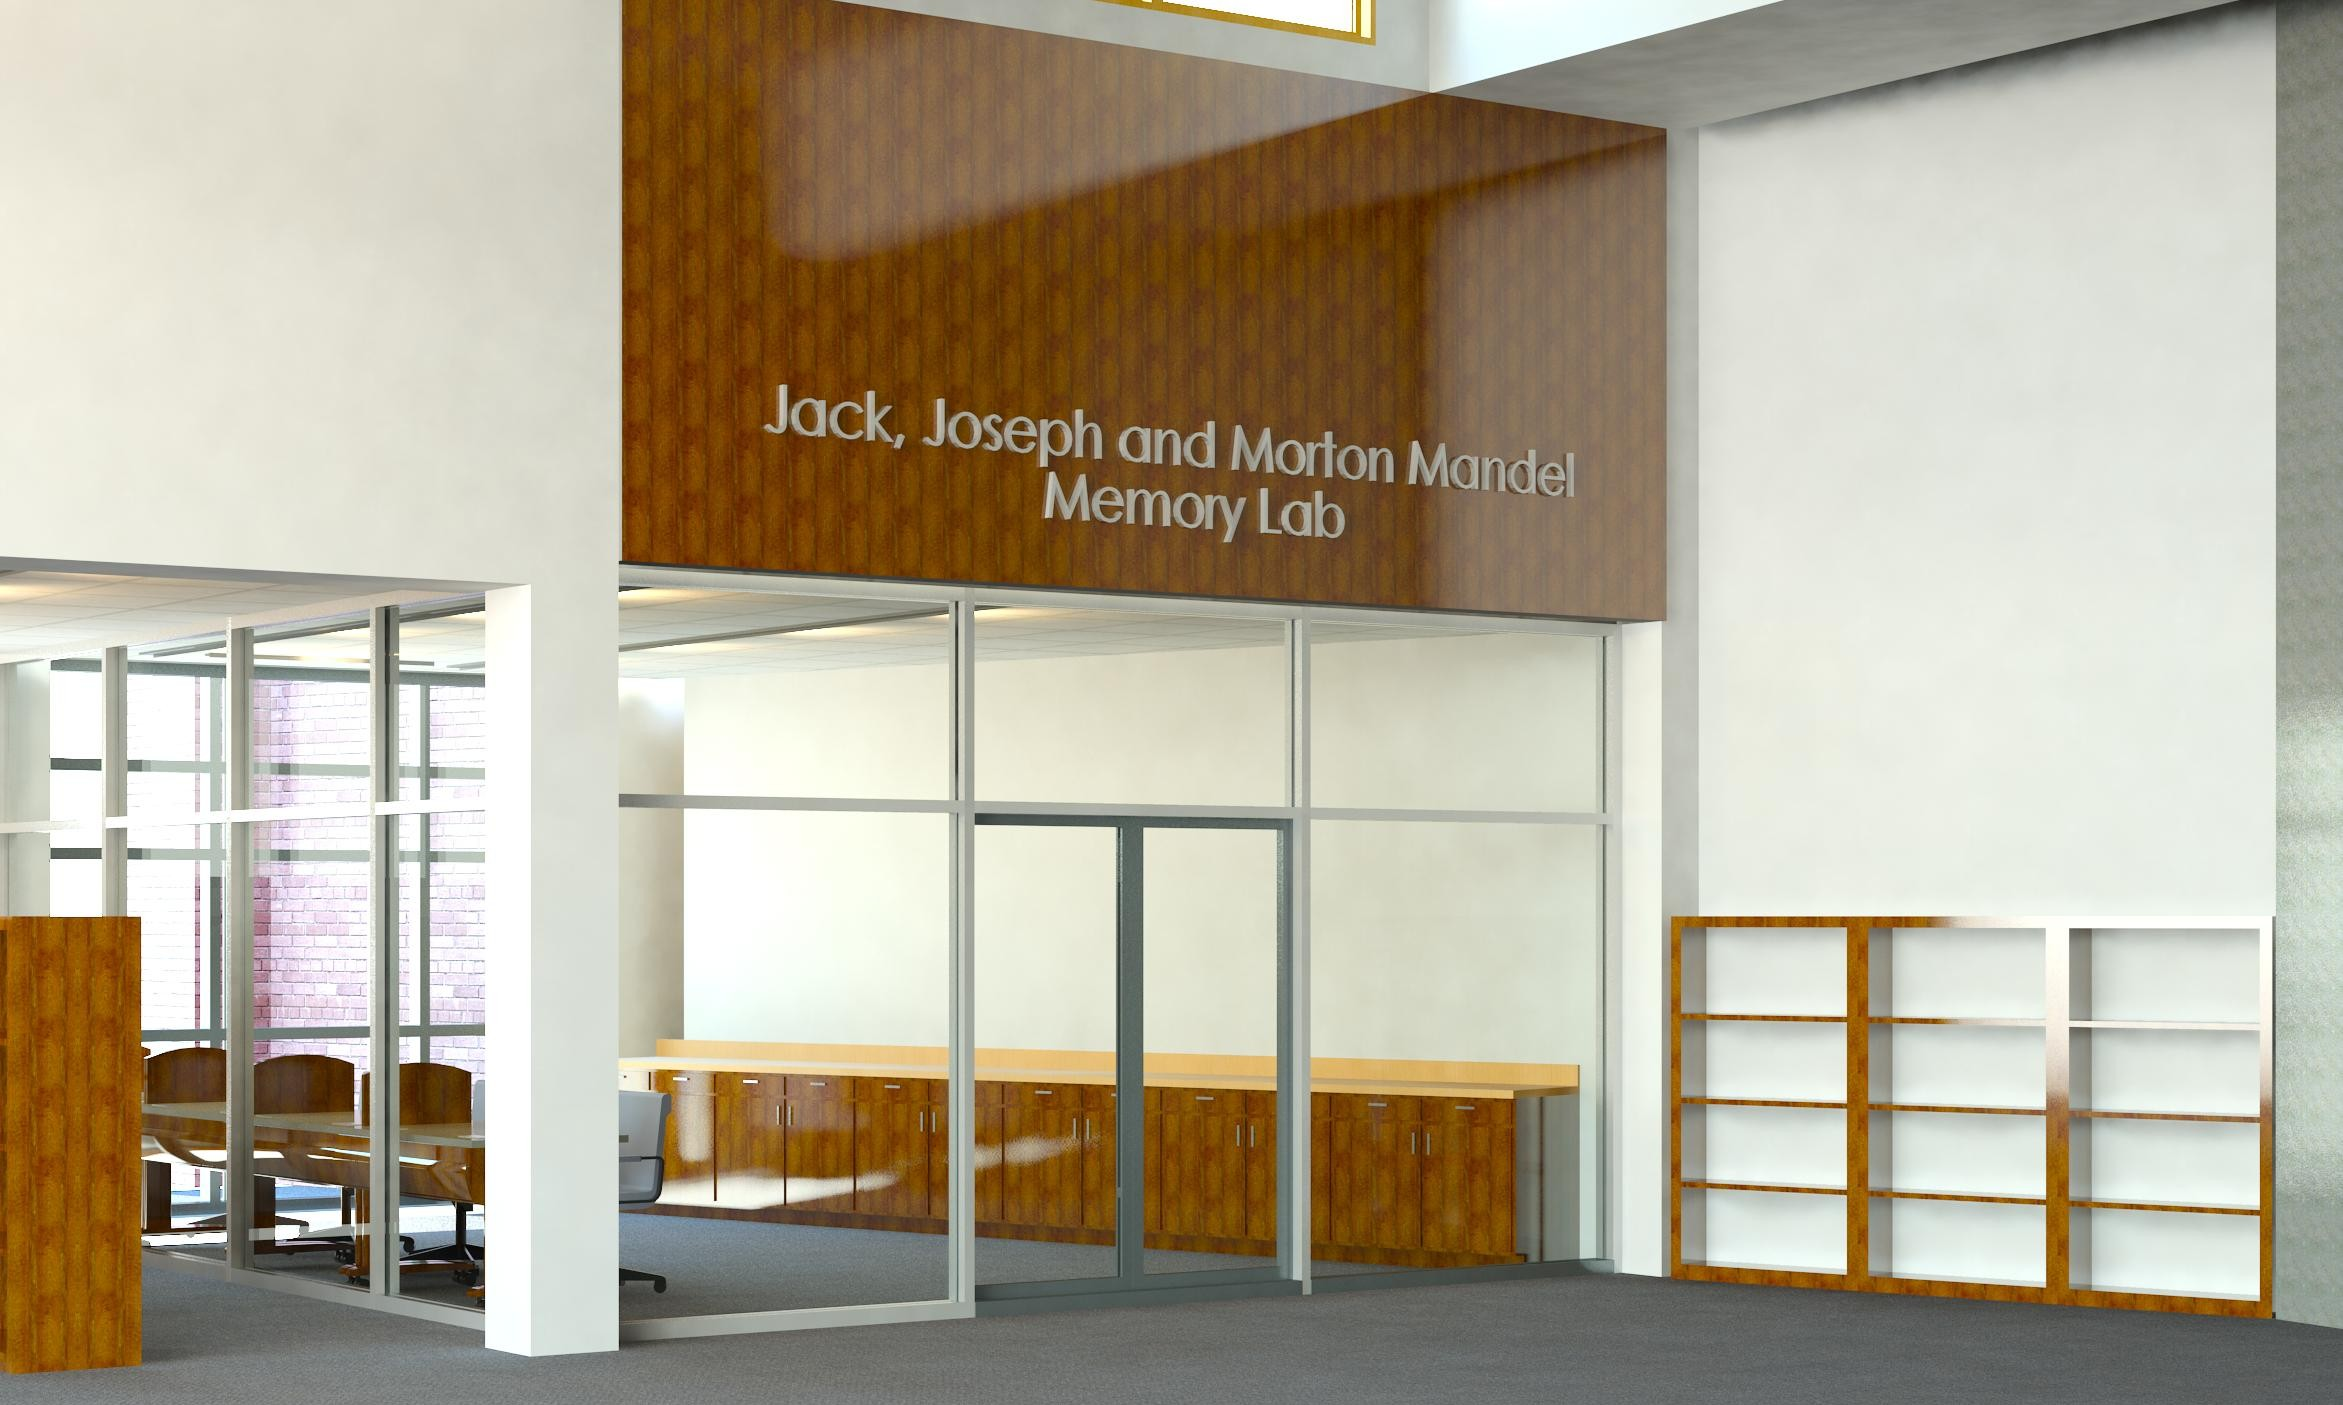 The Jack, Joseph And Morton Mandel Foundation Funds New Memory Lab At Cuyahoga County Public Library